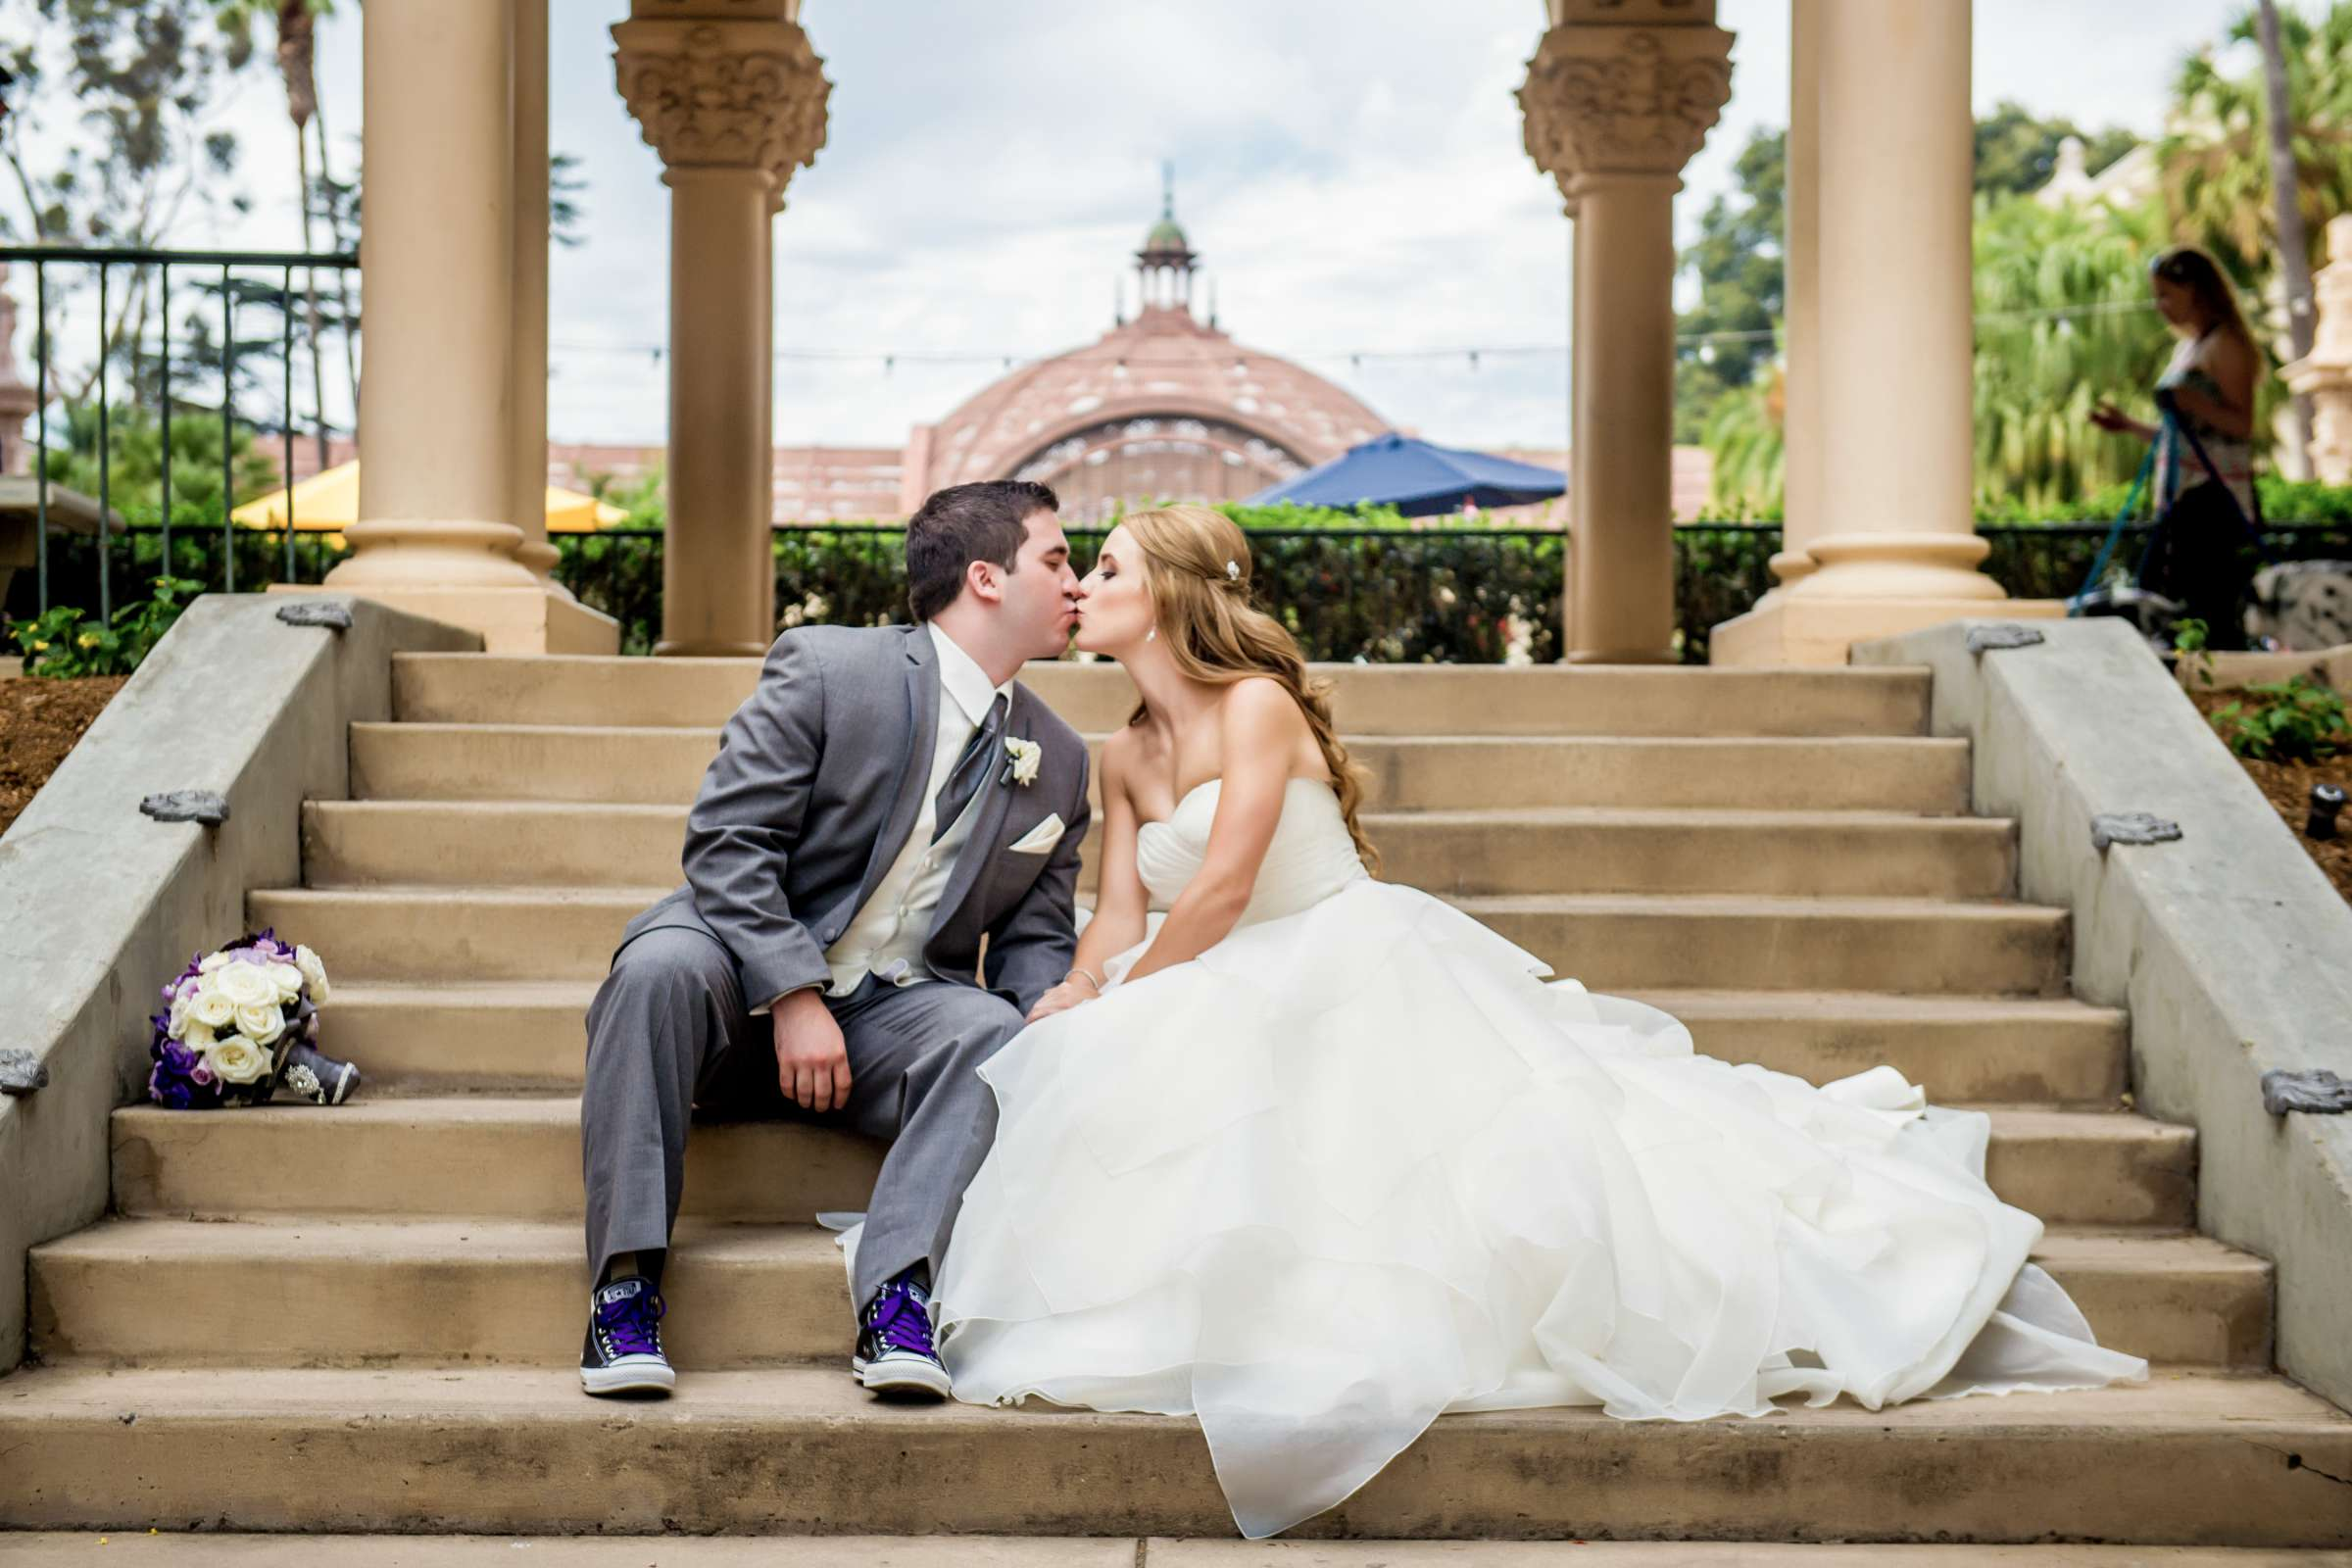 The Prado Wedding coordinated by Victoria Weddings & Events, Melissa and Andrew Wedding Photo #91 by True Photography